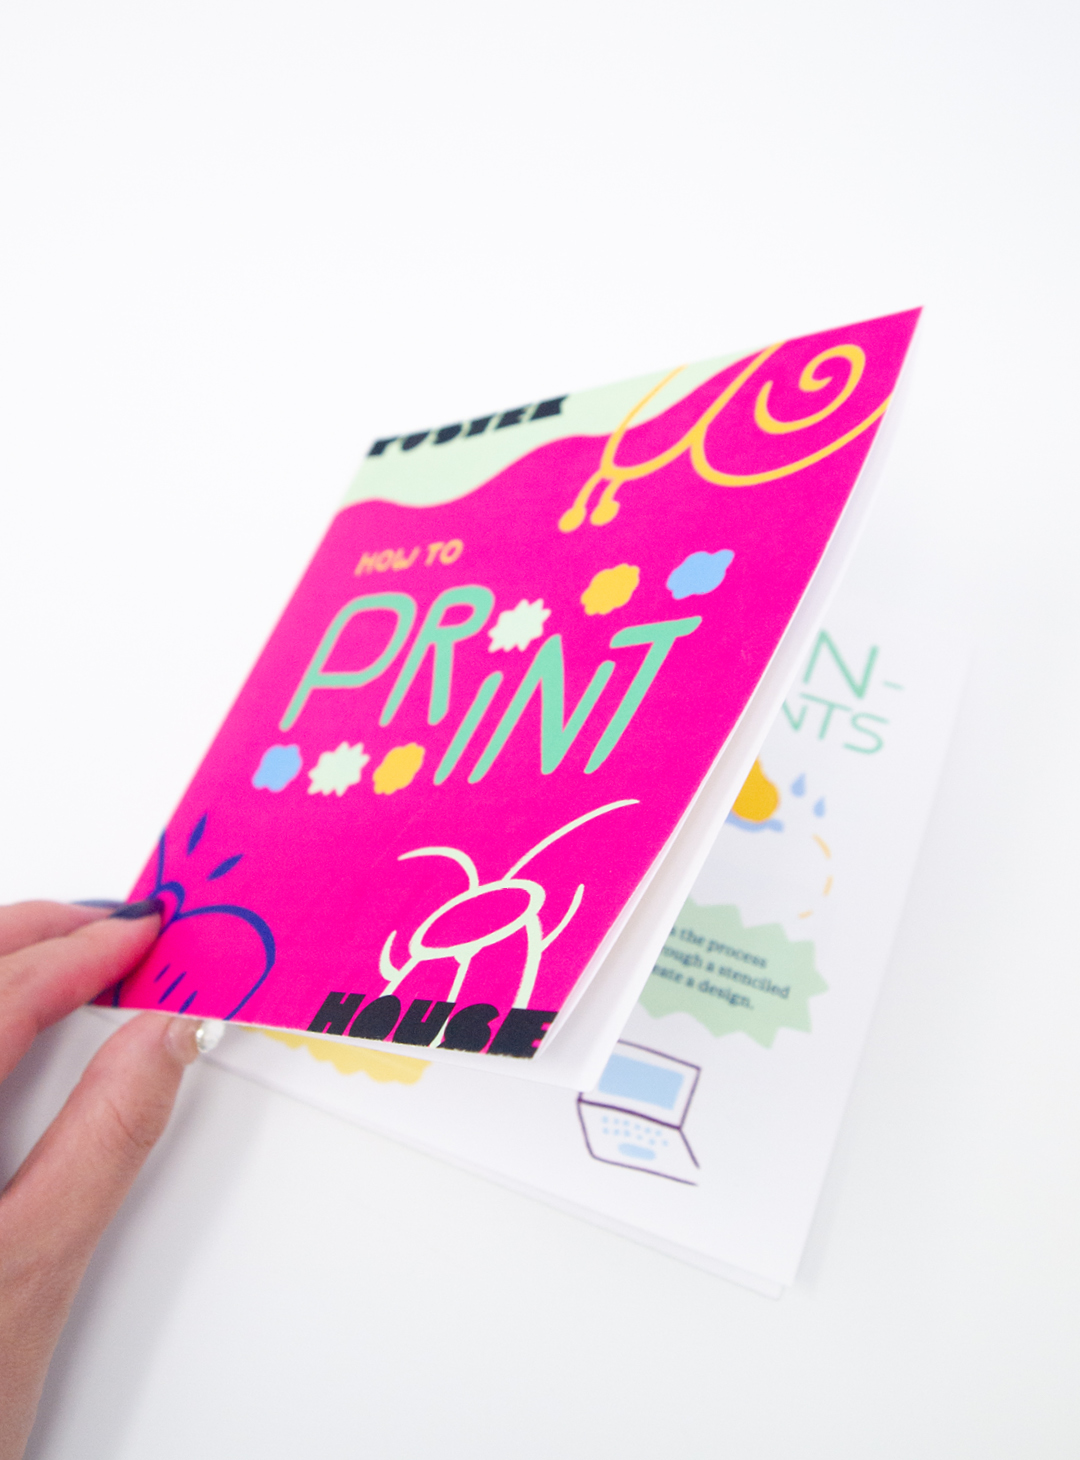 A photograph of the booklet being opened. The cover of the booklet, featuring words